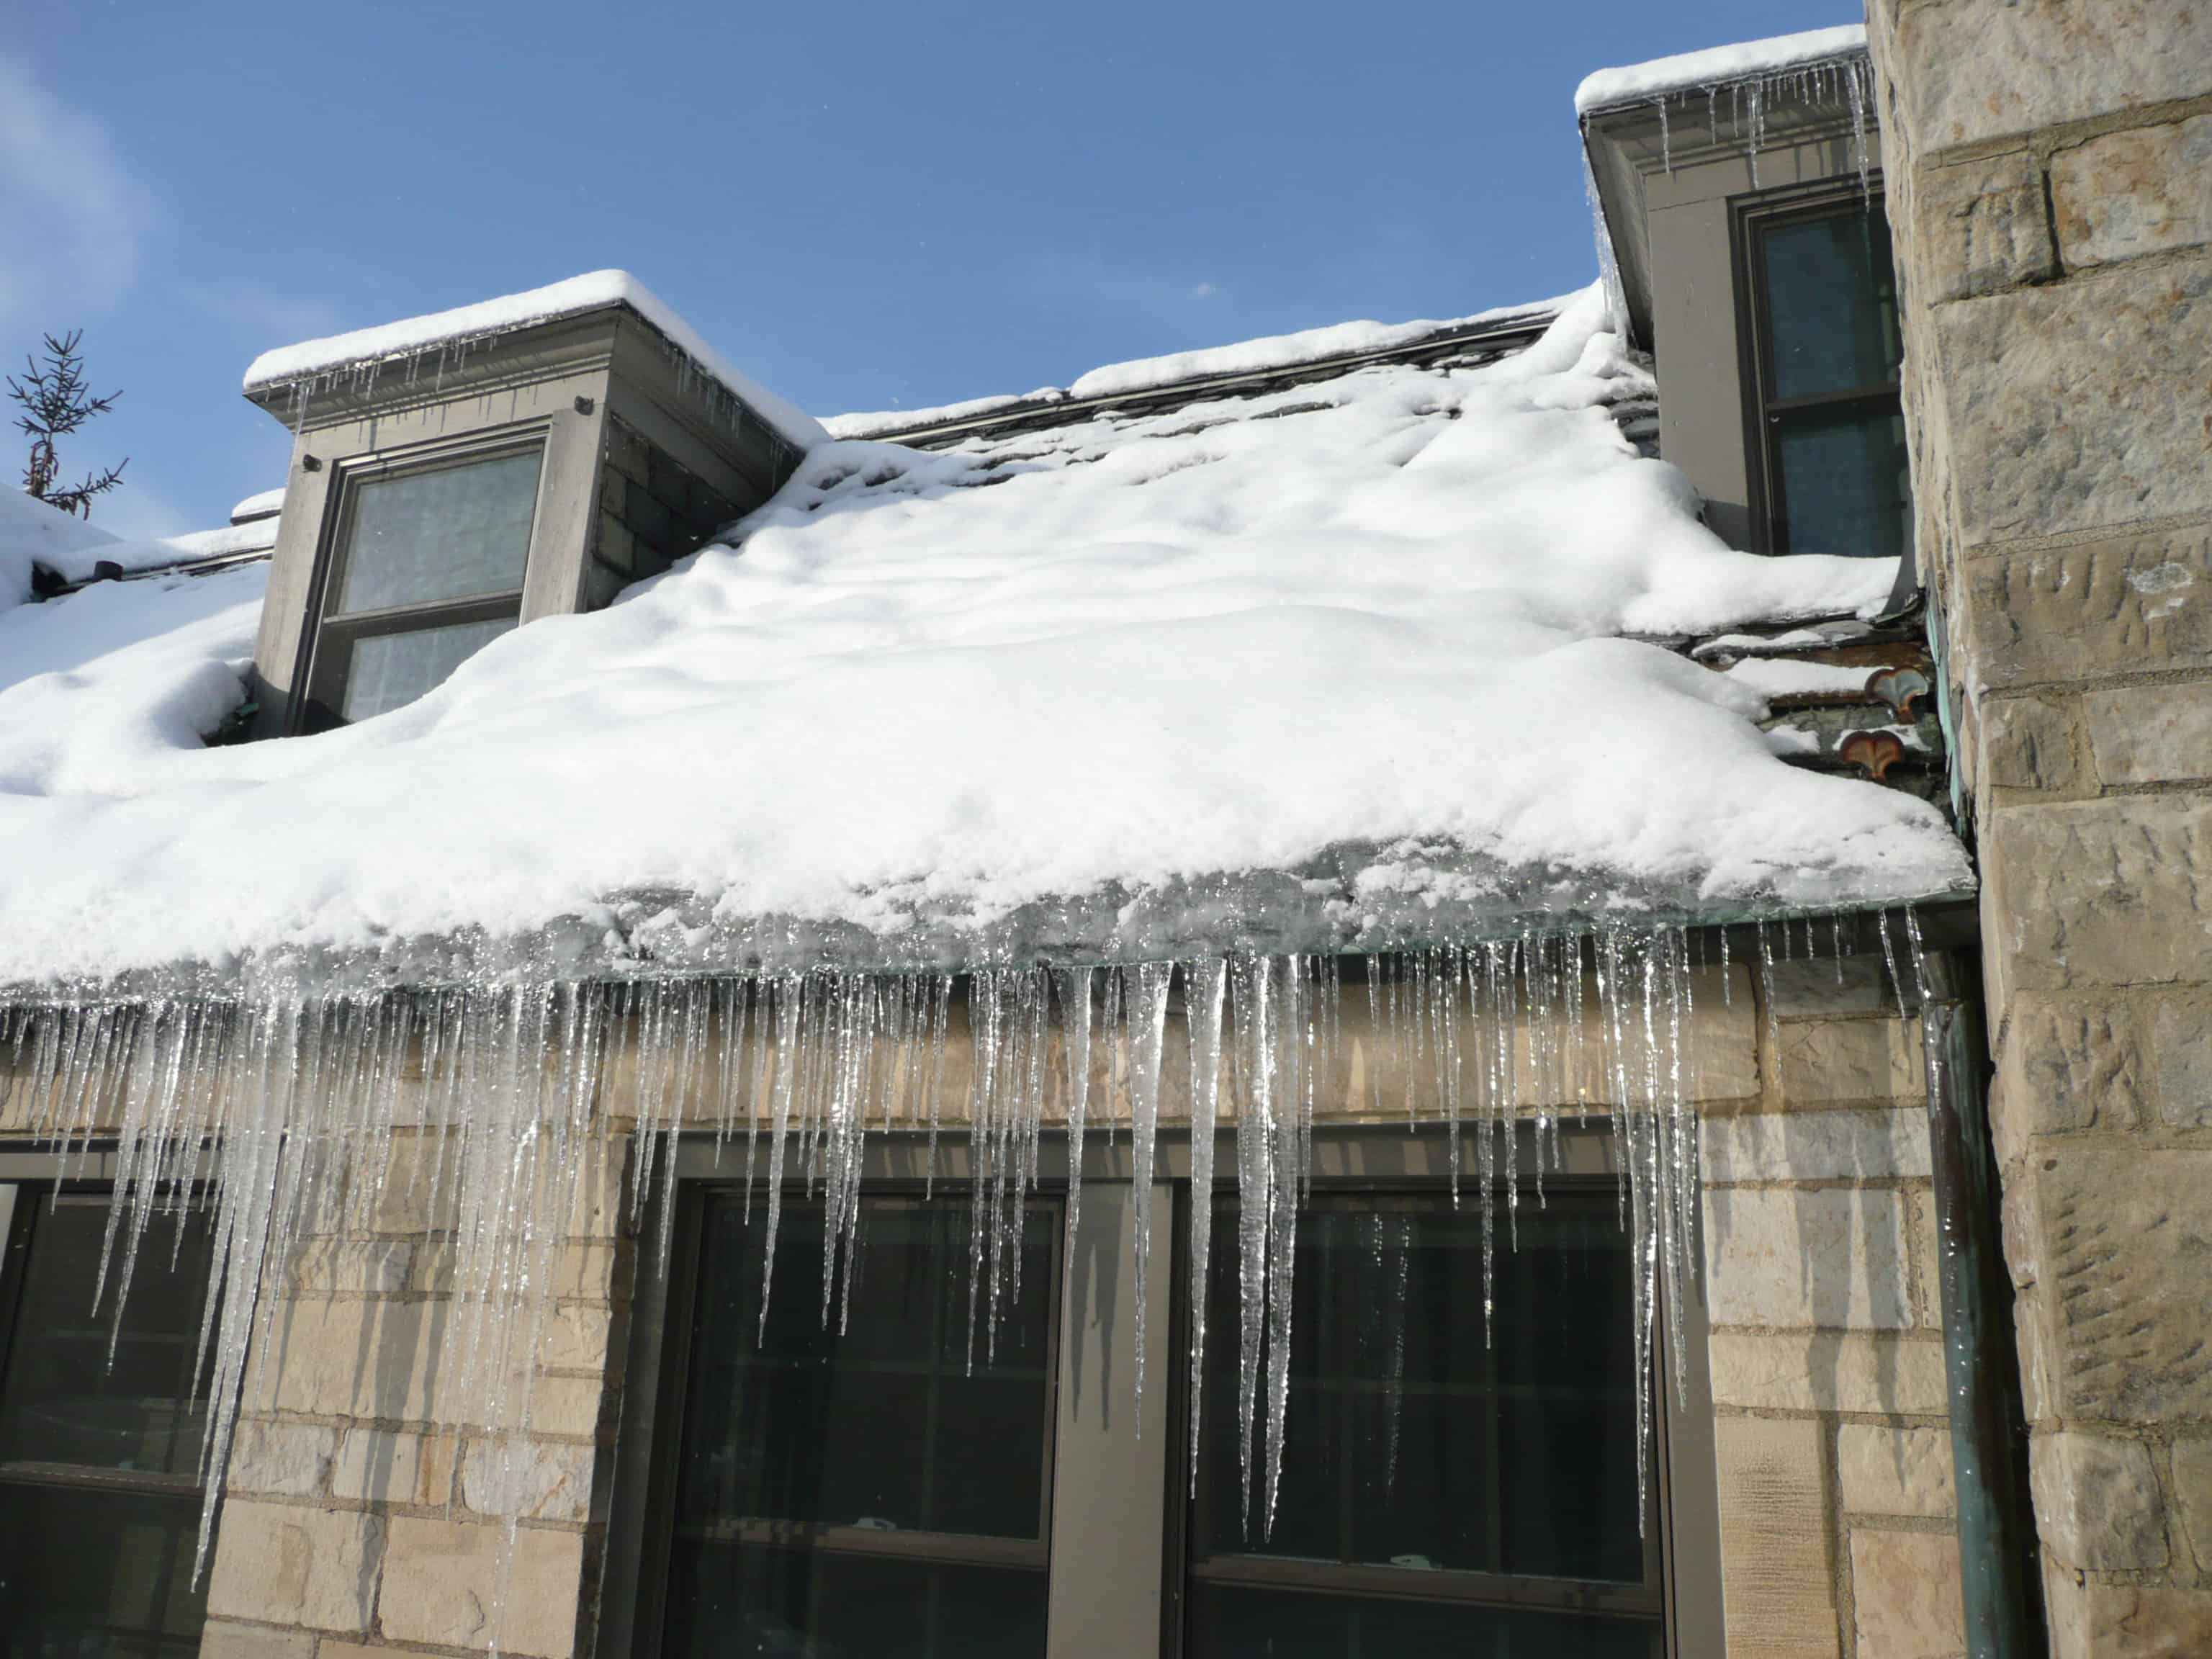 Ice, Icicles, and Ice Dams – Oh My!